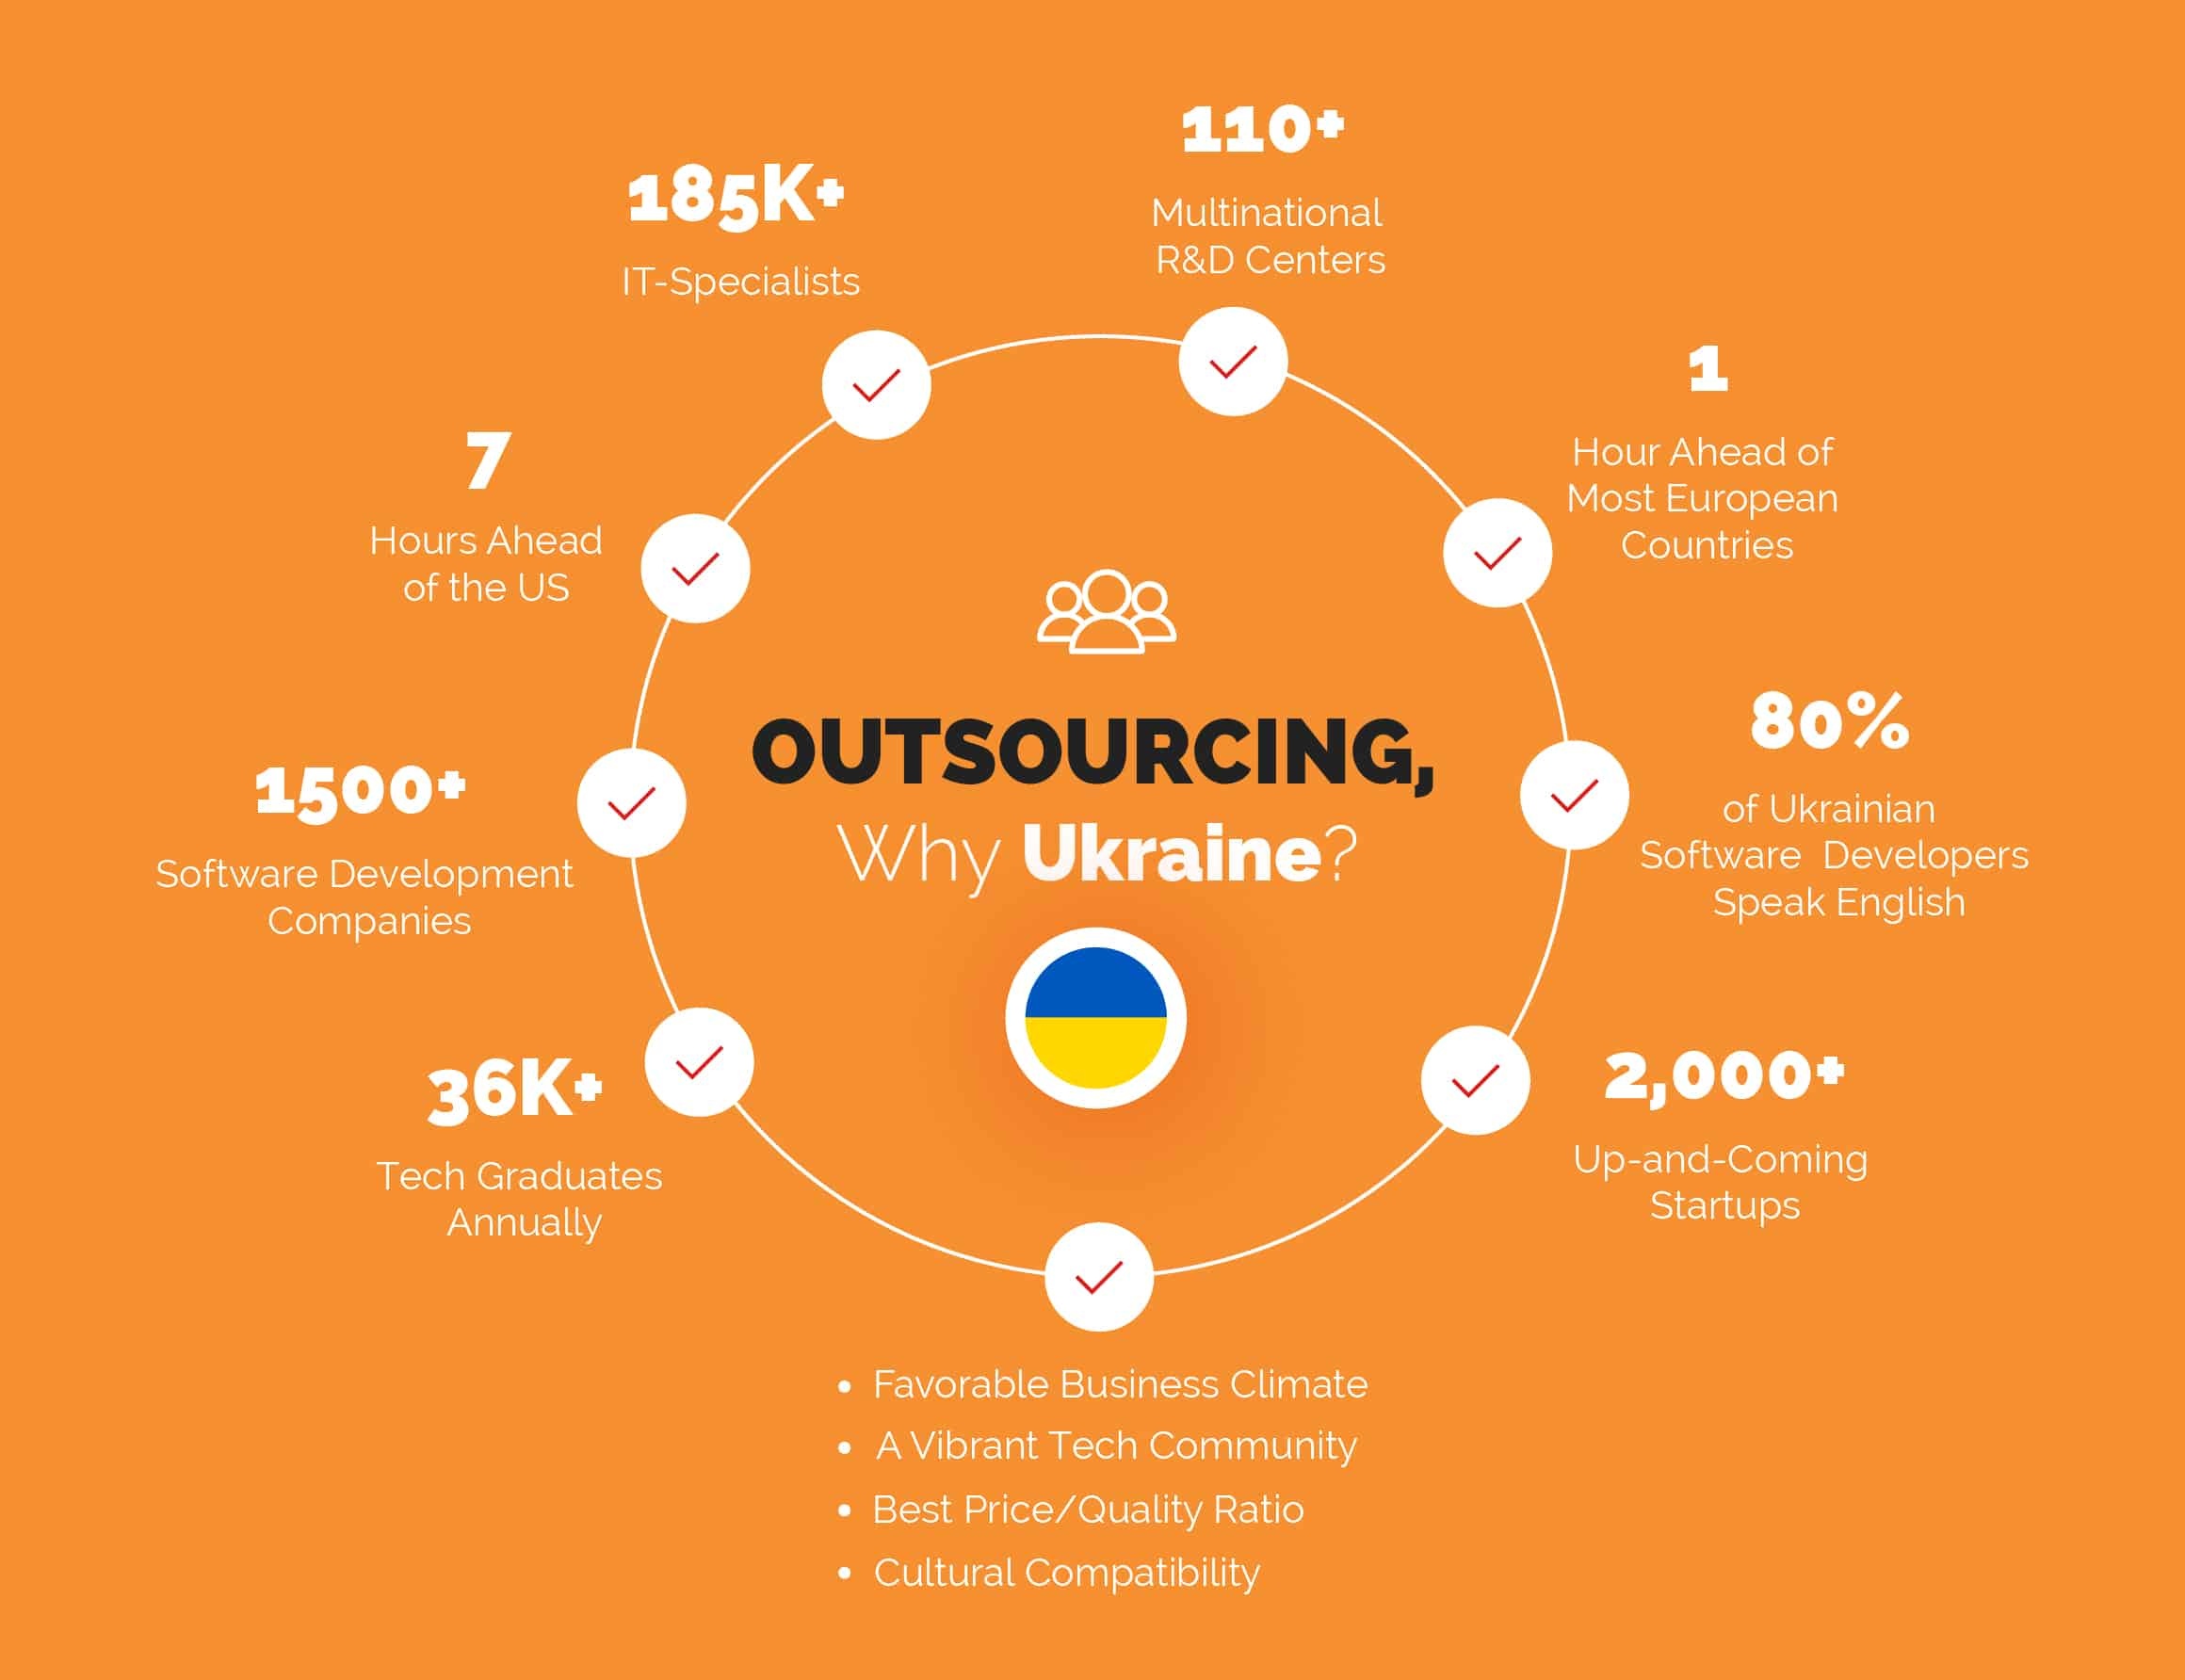 Why choose Ukraine as an outsourcing destination